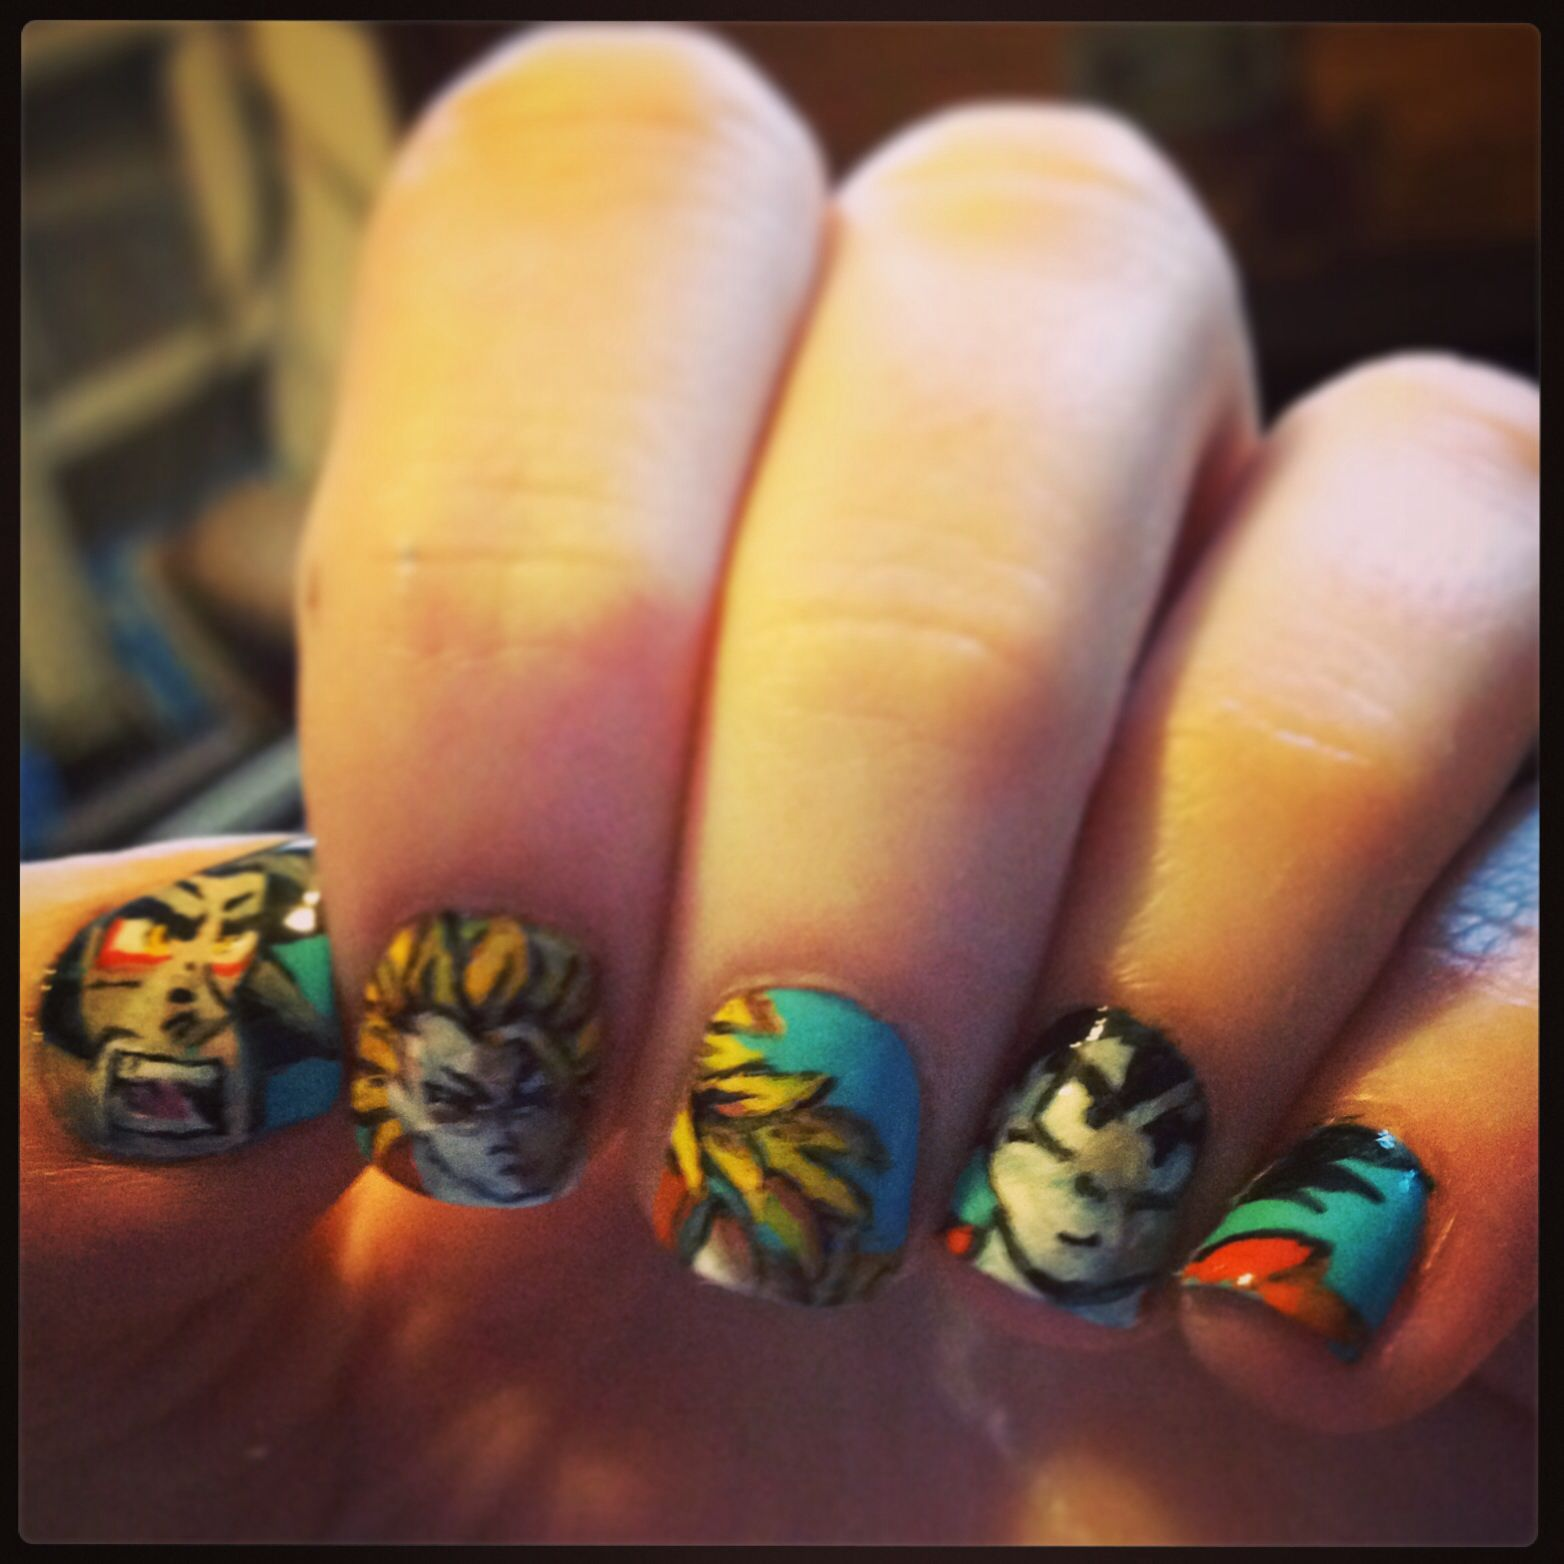 Dragon ball z nails I did on myself for fun | nerd shit | Pinterest ...